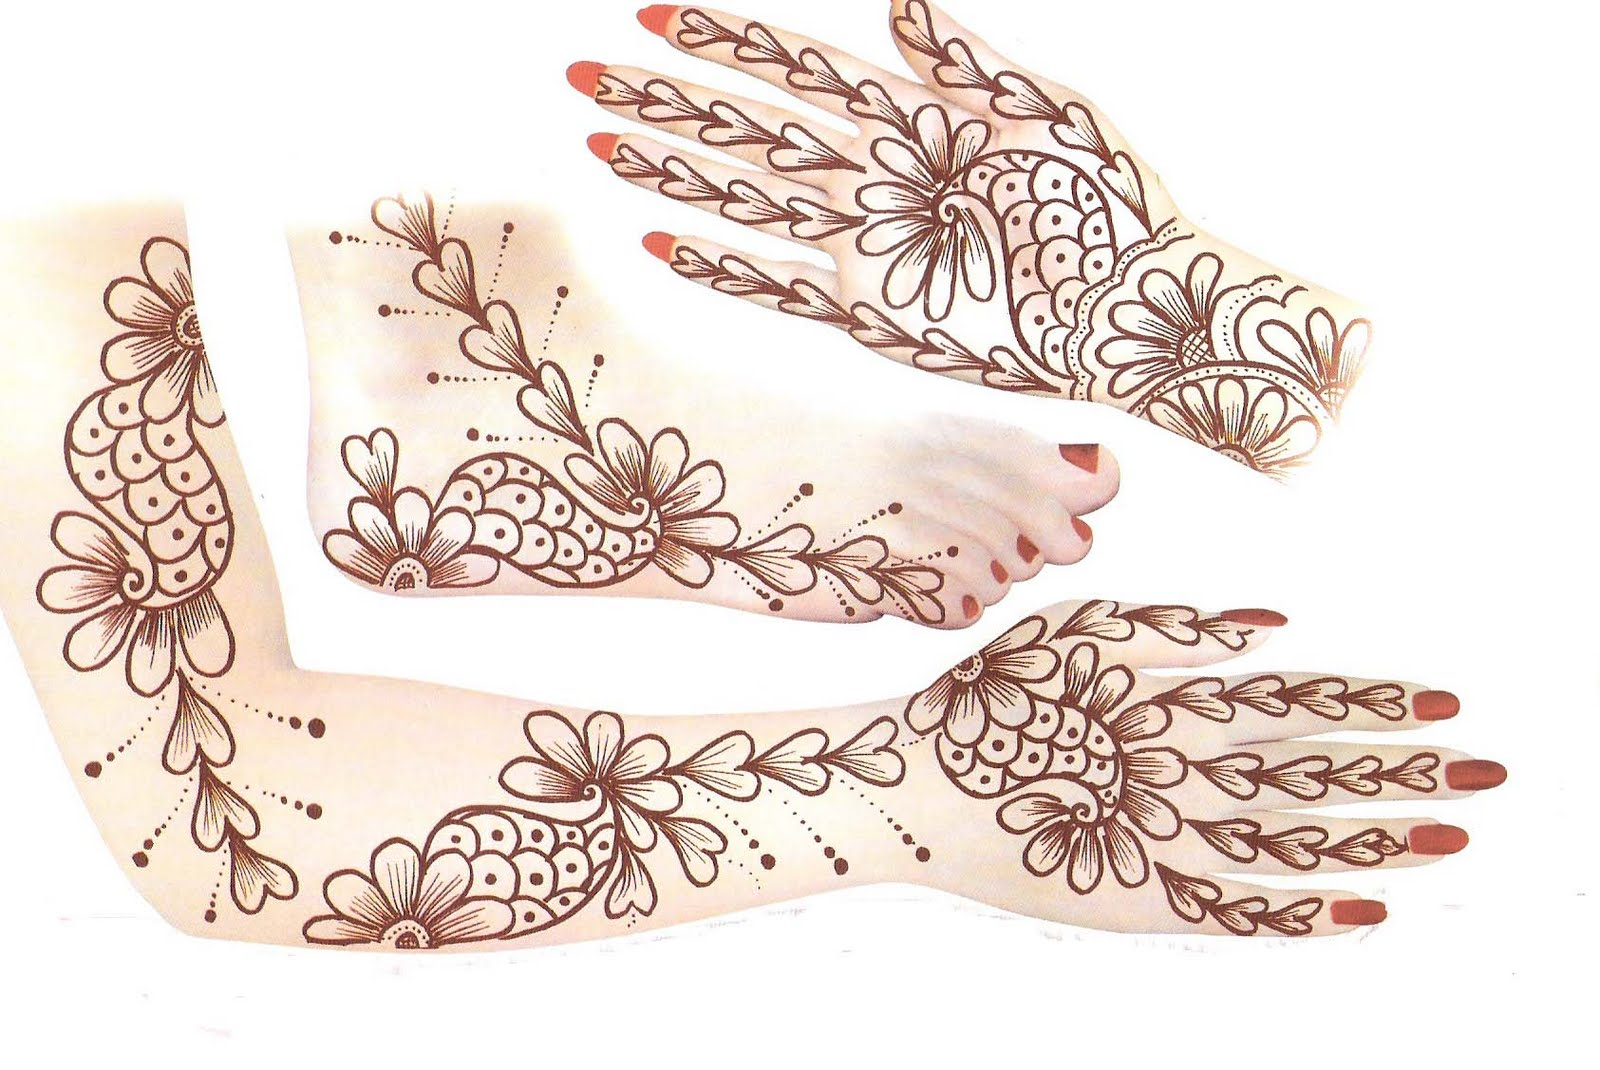 Mehandi Design On Paper Patterns Images Book For Hand Dresses For